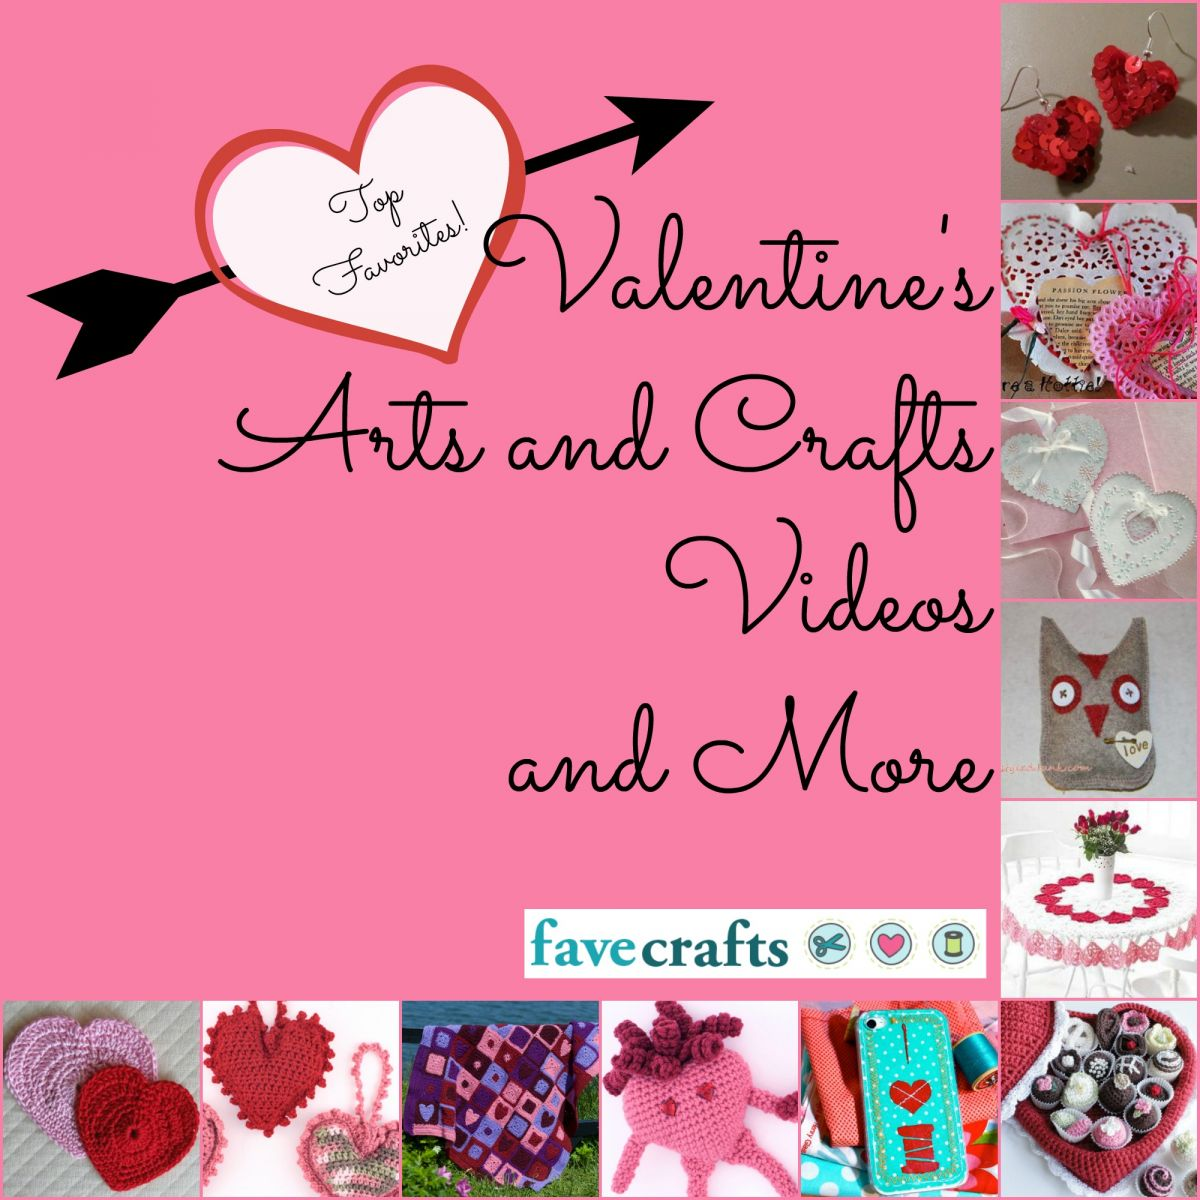 Top 15 favorite valentine 39 s arts and crafts videos and for Crafts for valentines day ideas